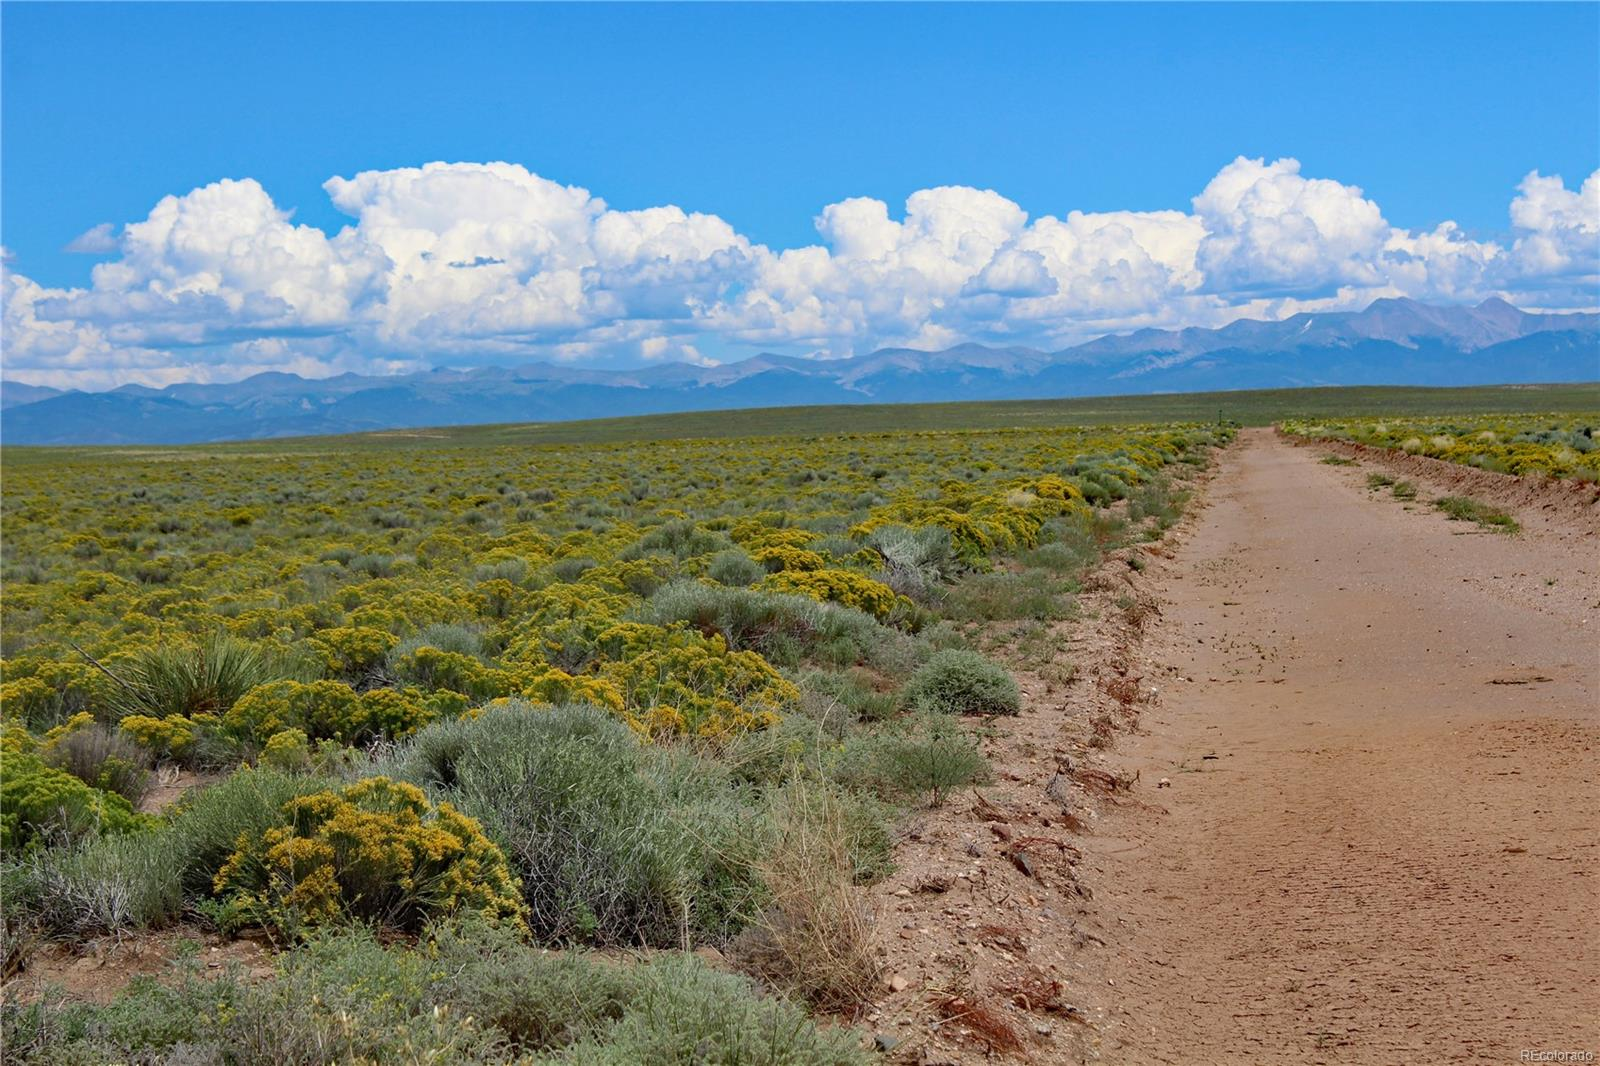 Lot 26 Marcia Road, Blanca, CO 81123 - Blanca, CO real estate listing